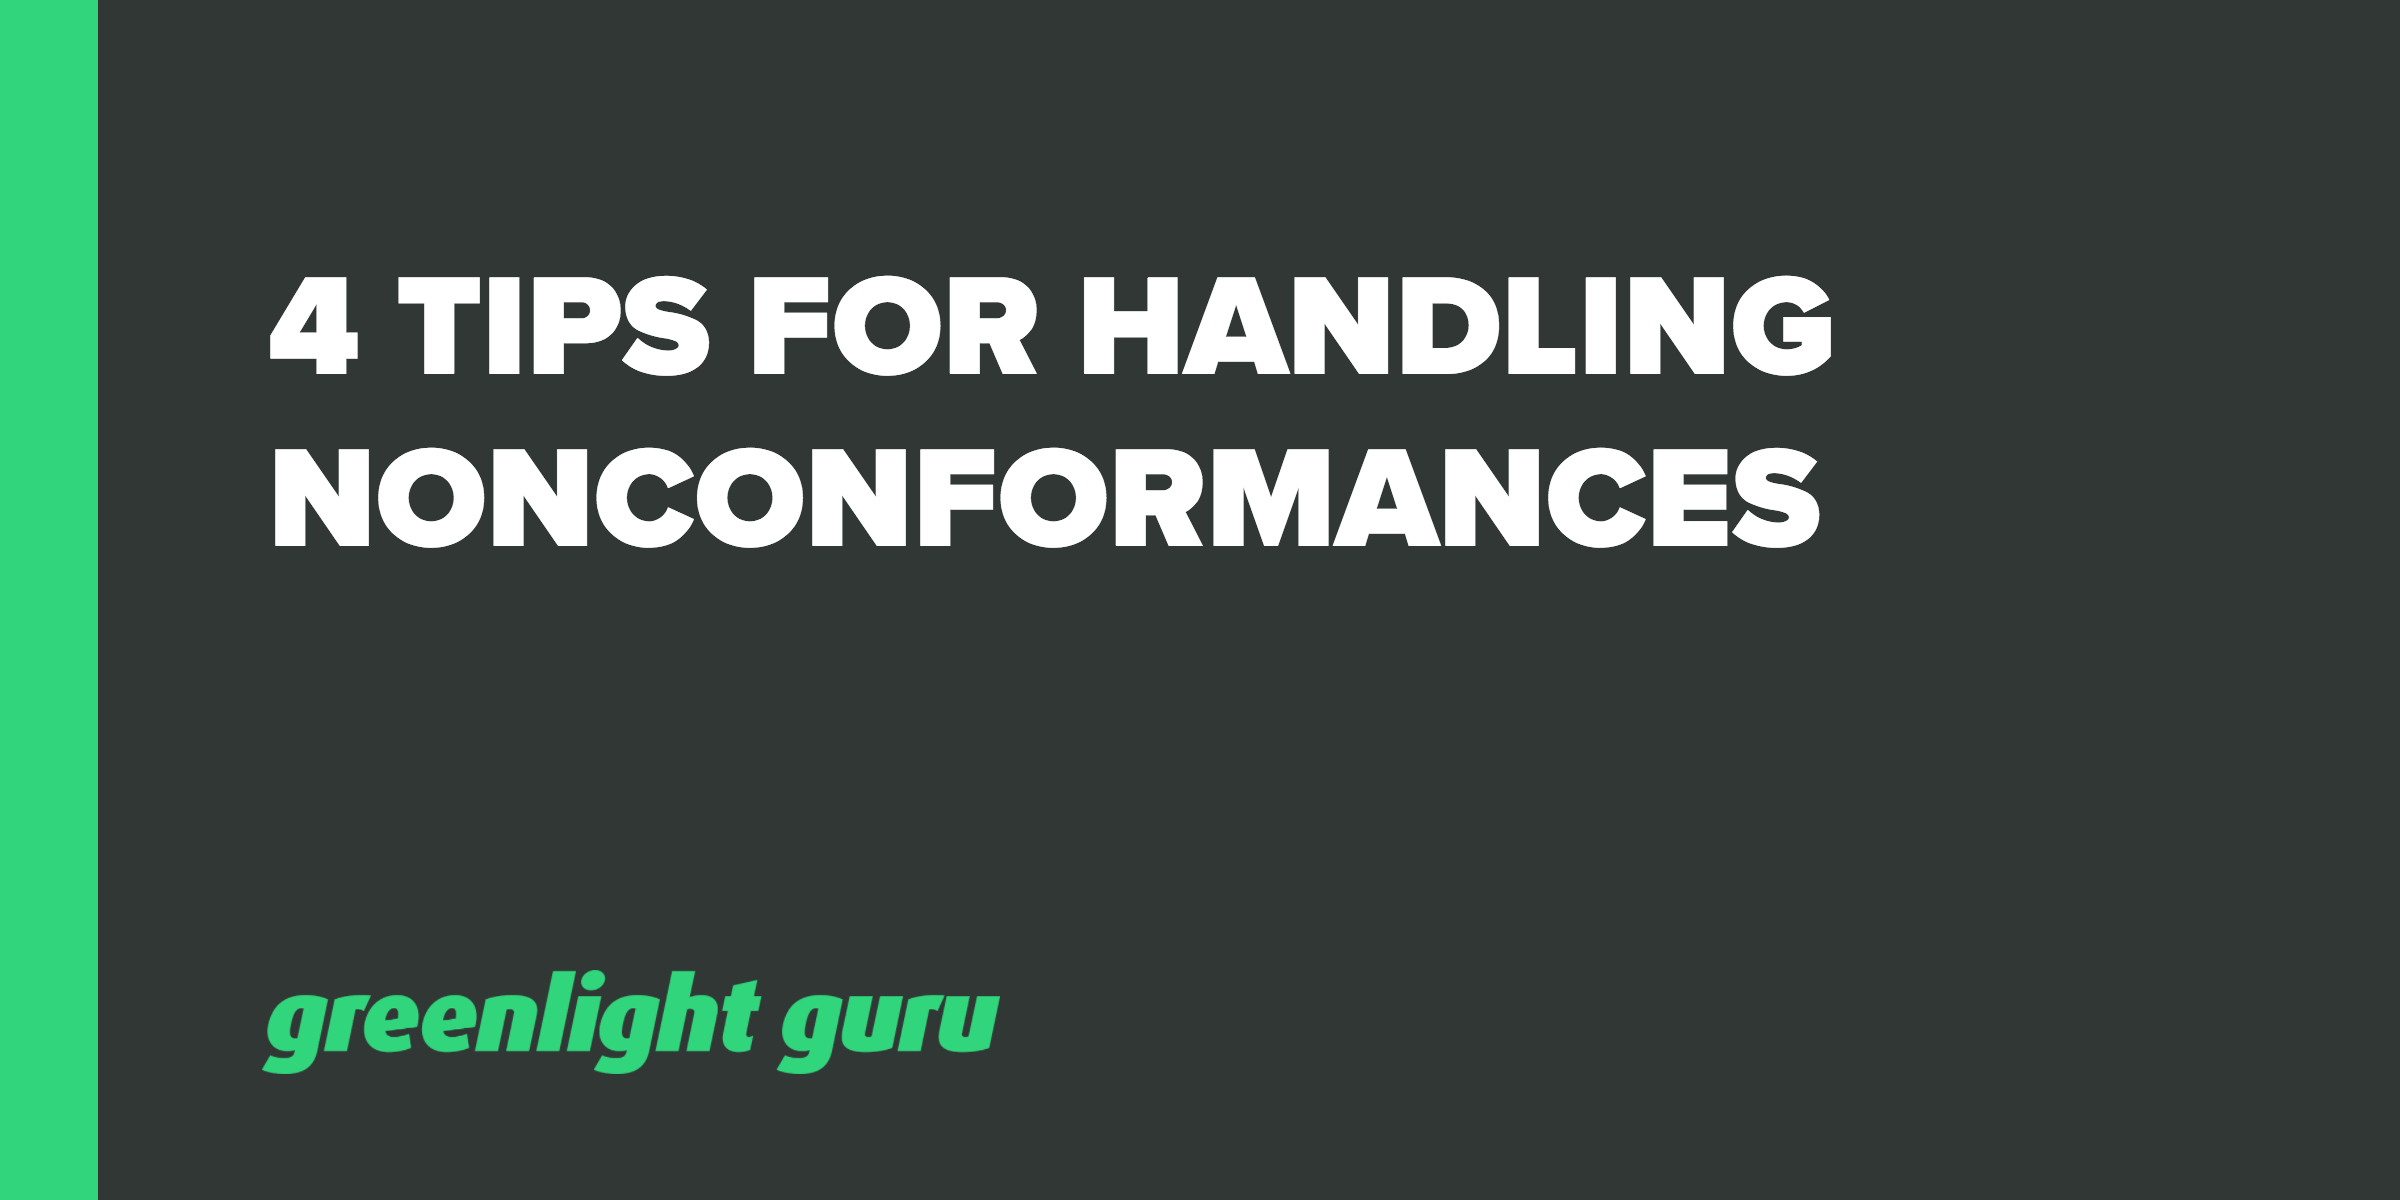 tips-handling-nonconformances